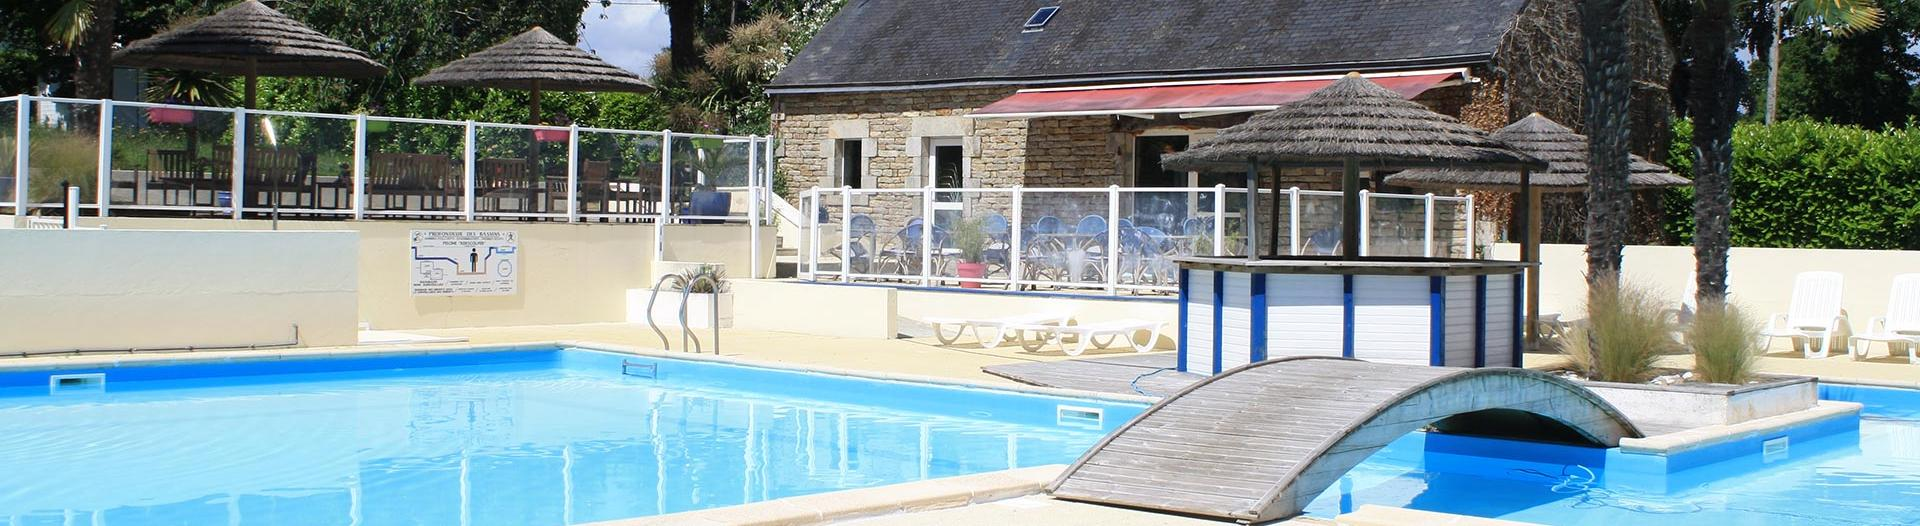 slider-camping-kerscolper-piscine